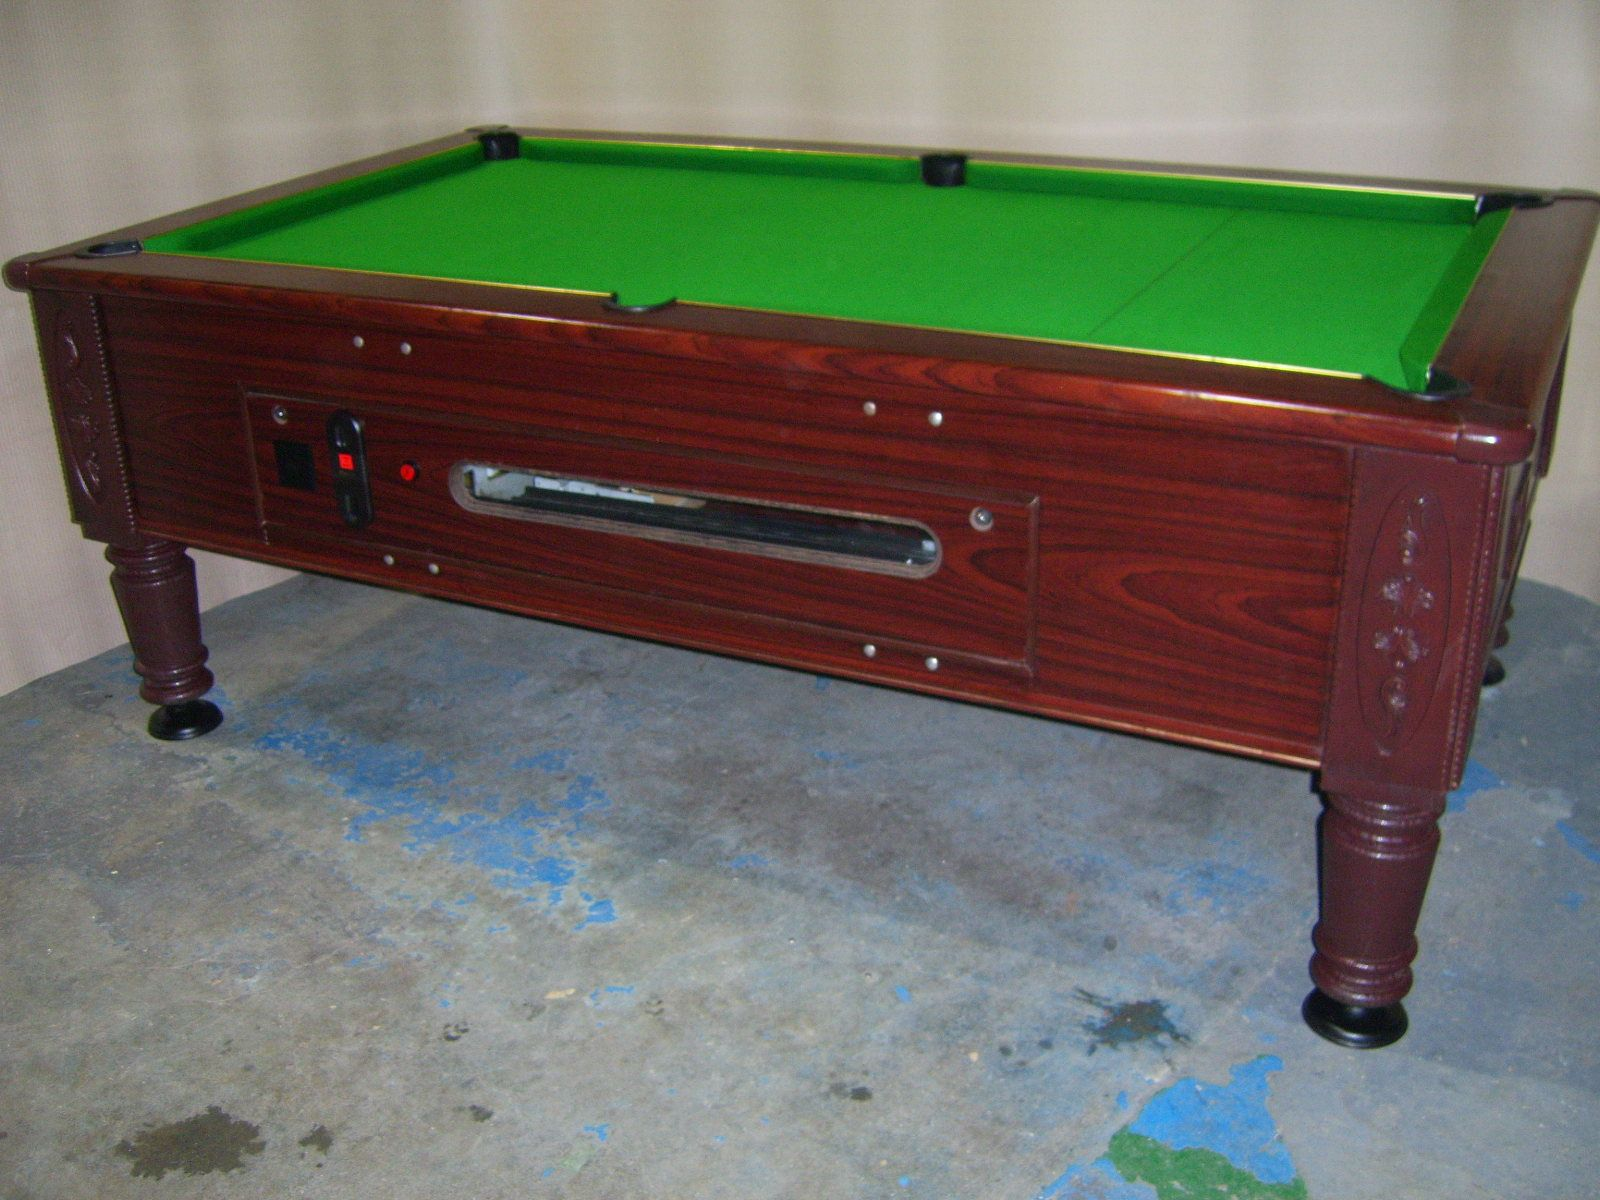 Excellent Superleague Imperial 7X4 Slate Bed Pub Pool Table Freeplay Interior Design Ideas Gentotryabchikinfo